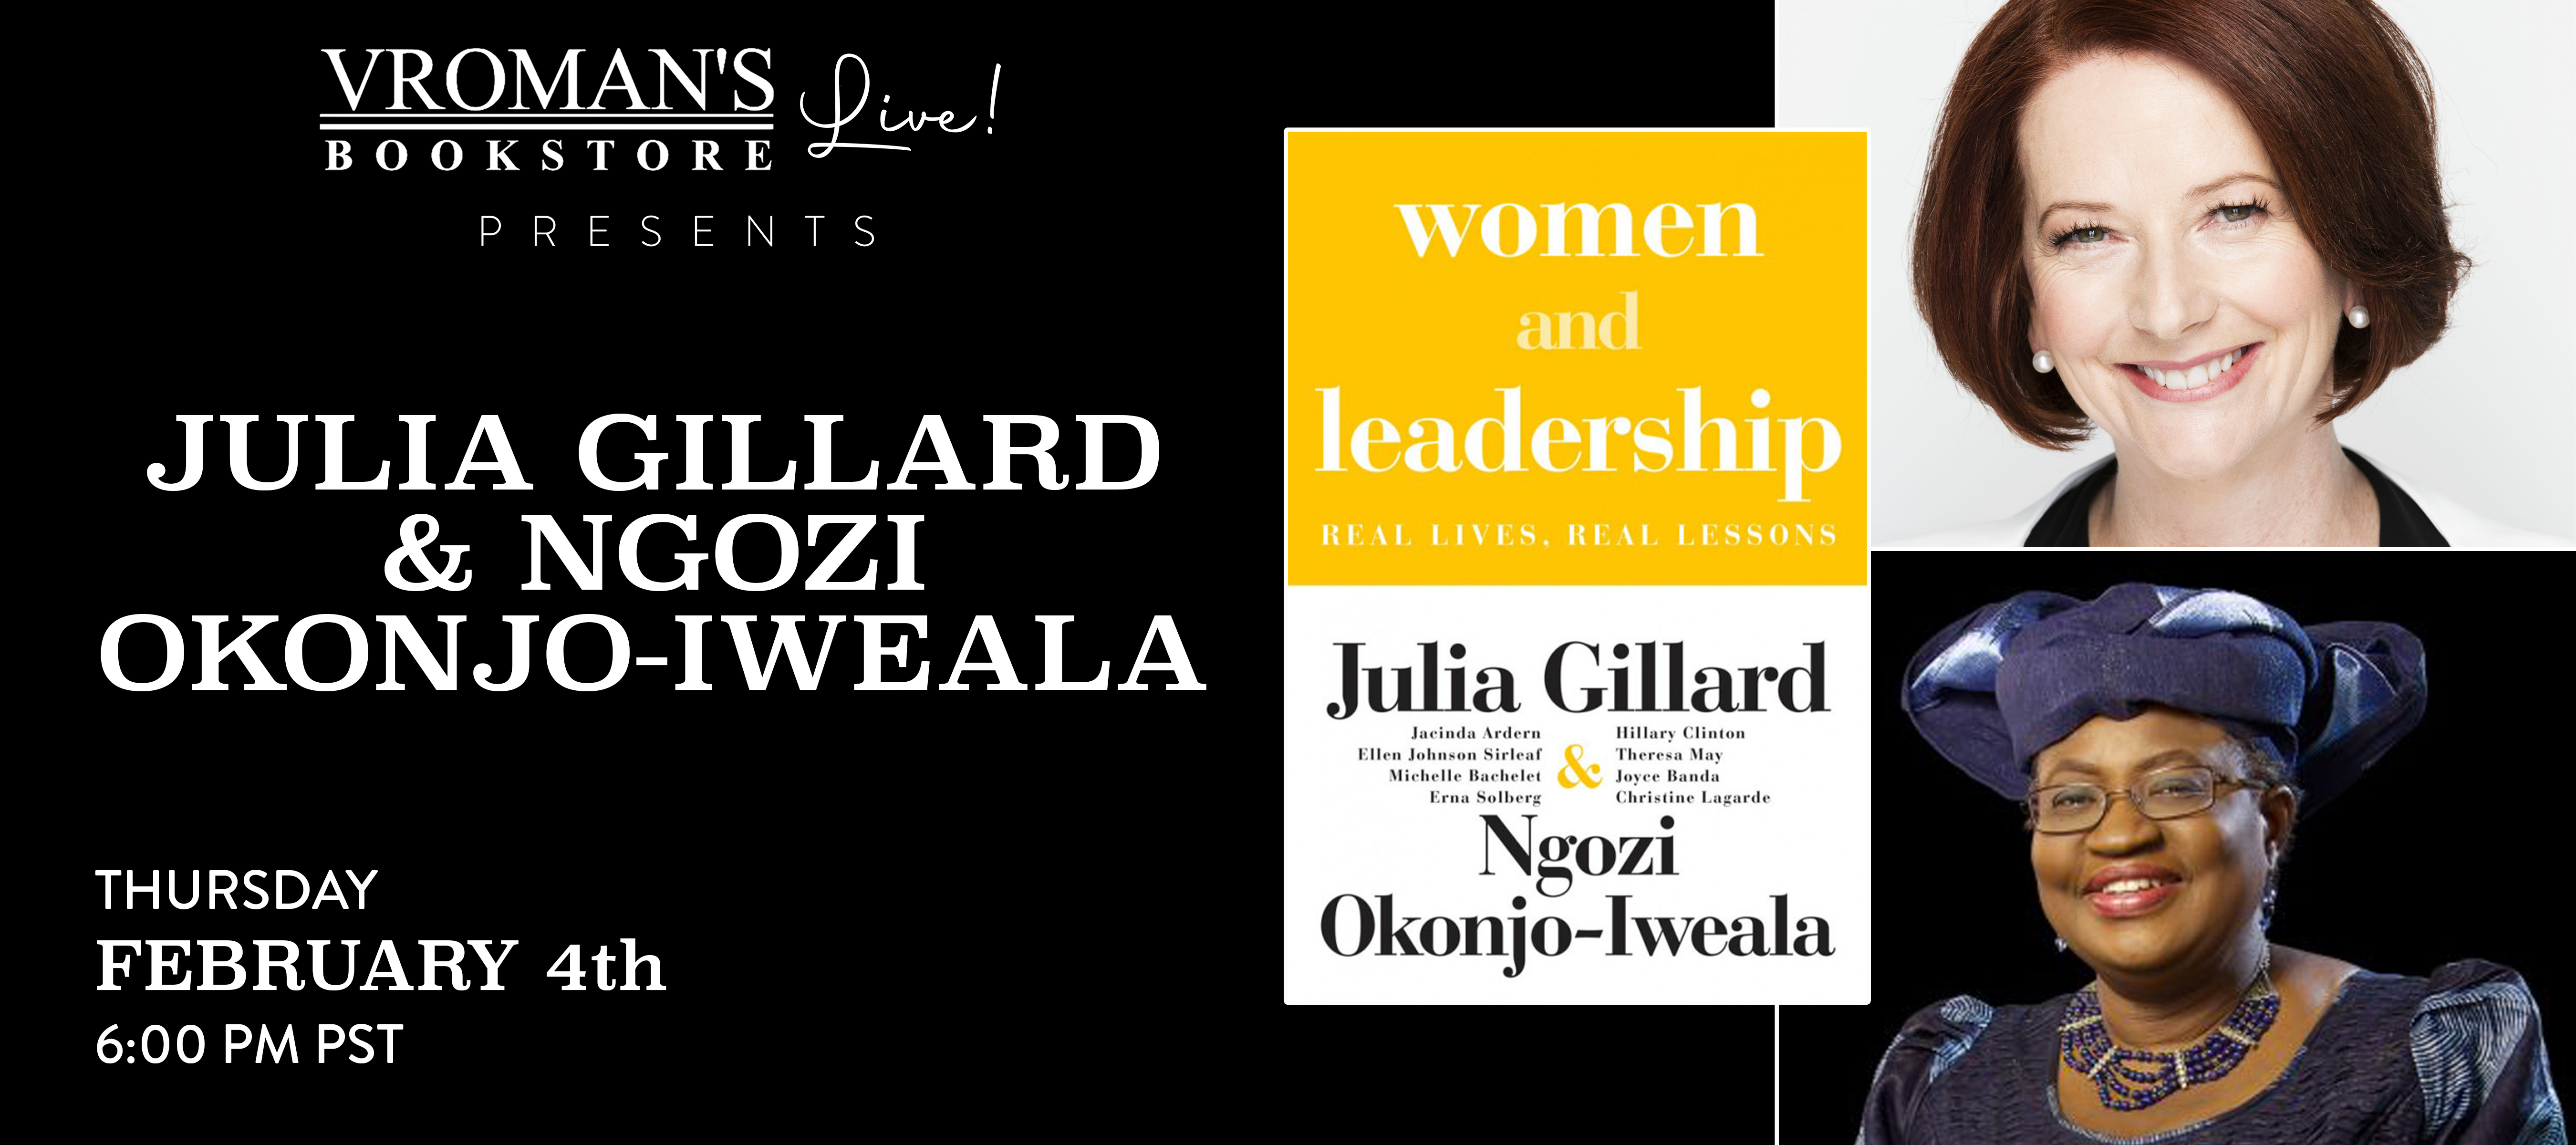 Julia Gillard & Ngozi Okonjo-Iweala on Thursday February 4th at 6pm PST